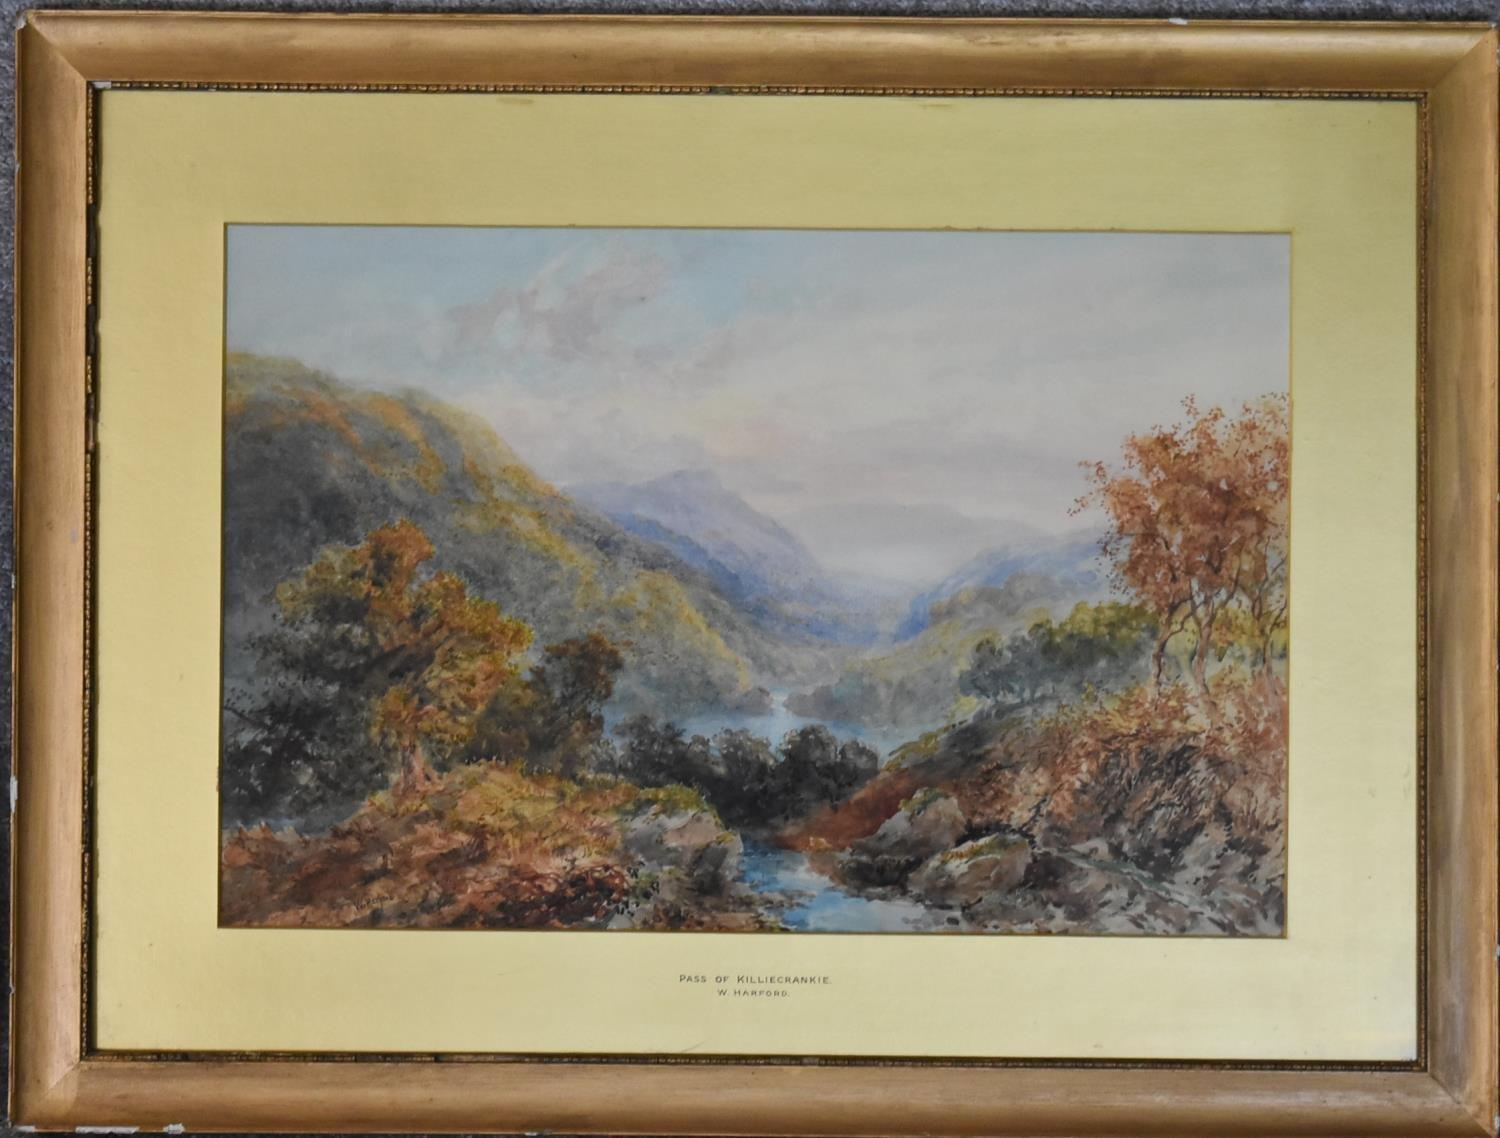 A framed and glazed watercolour; The Pass of Killliecrancie by W. Harford and two other framed and - Image 6 of 9